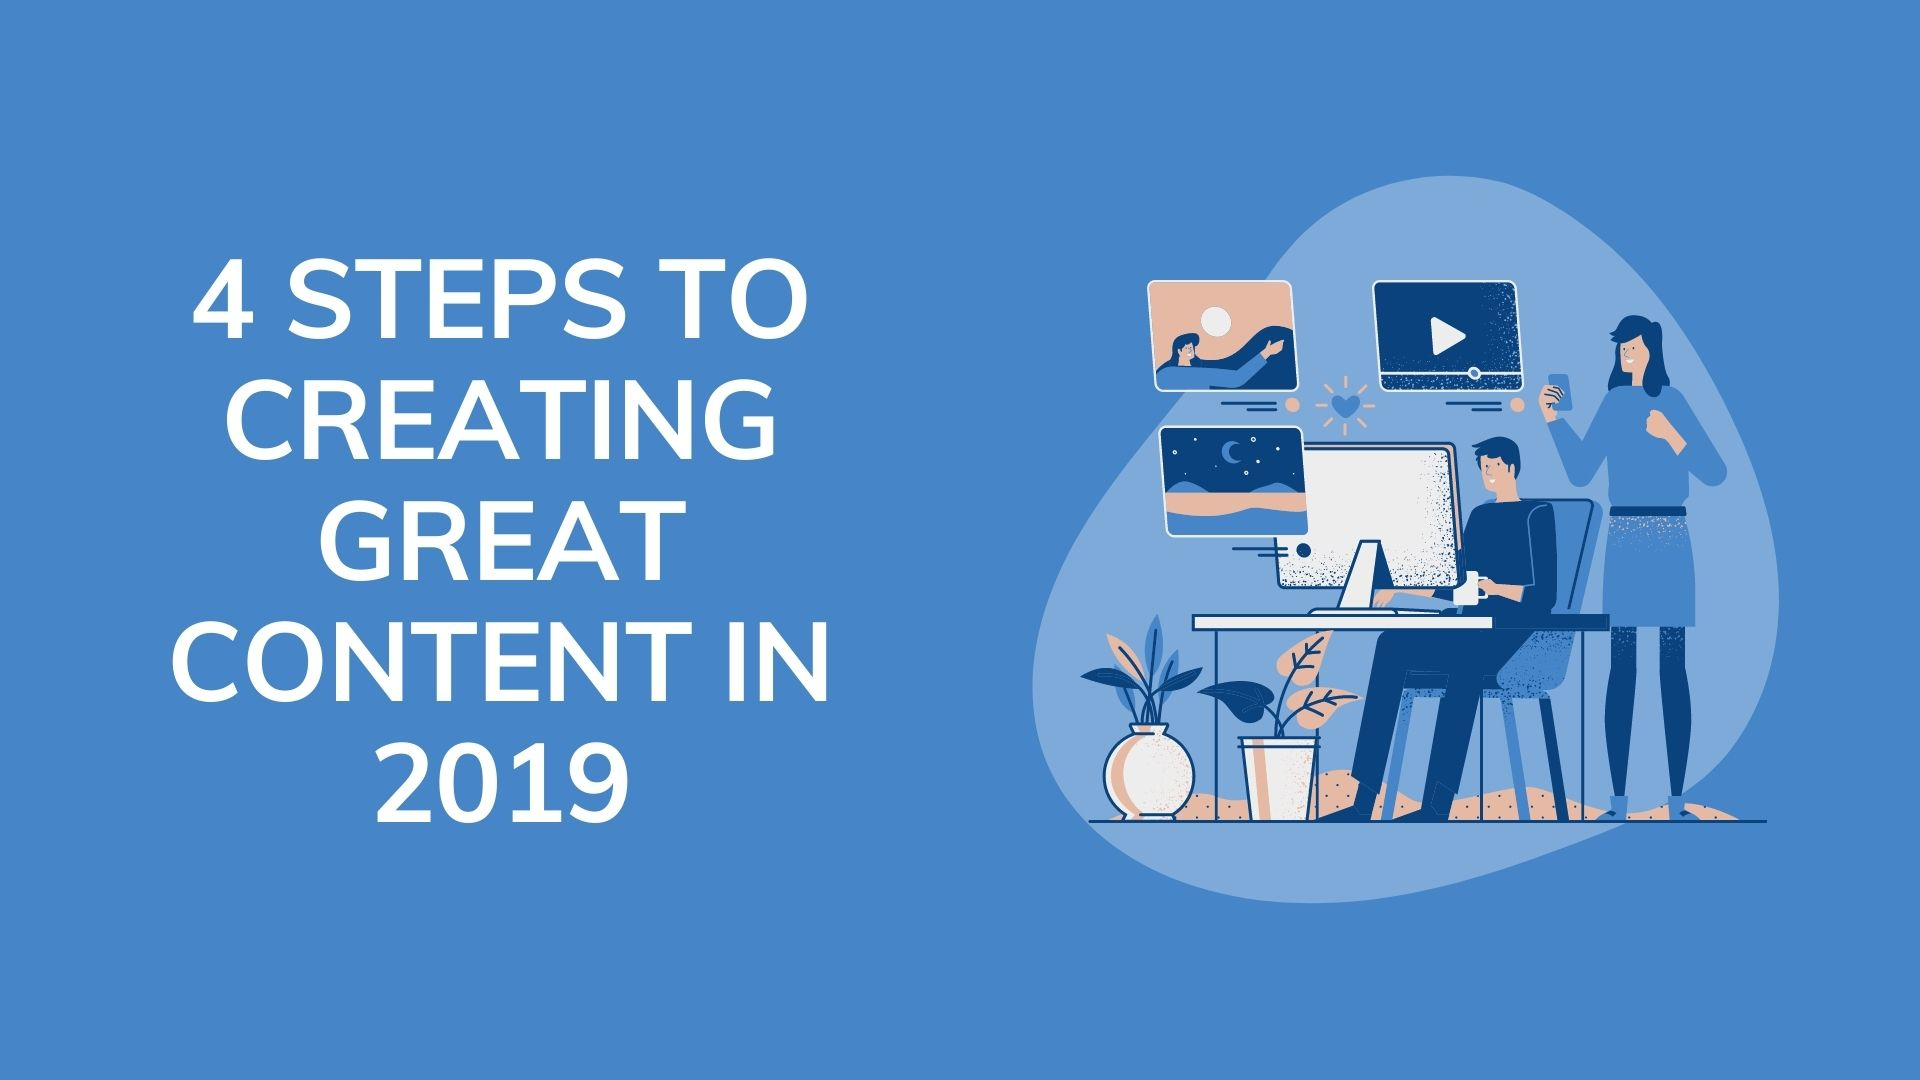 4 STEPS TO CREATING GREAT CONTENT IN 2019